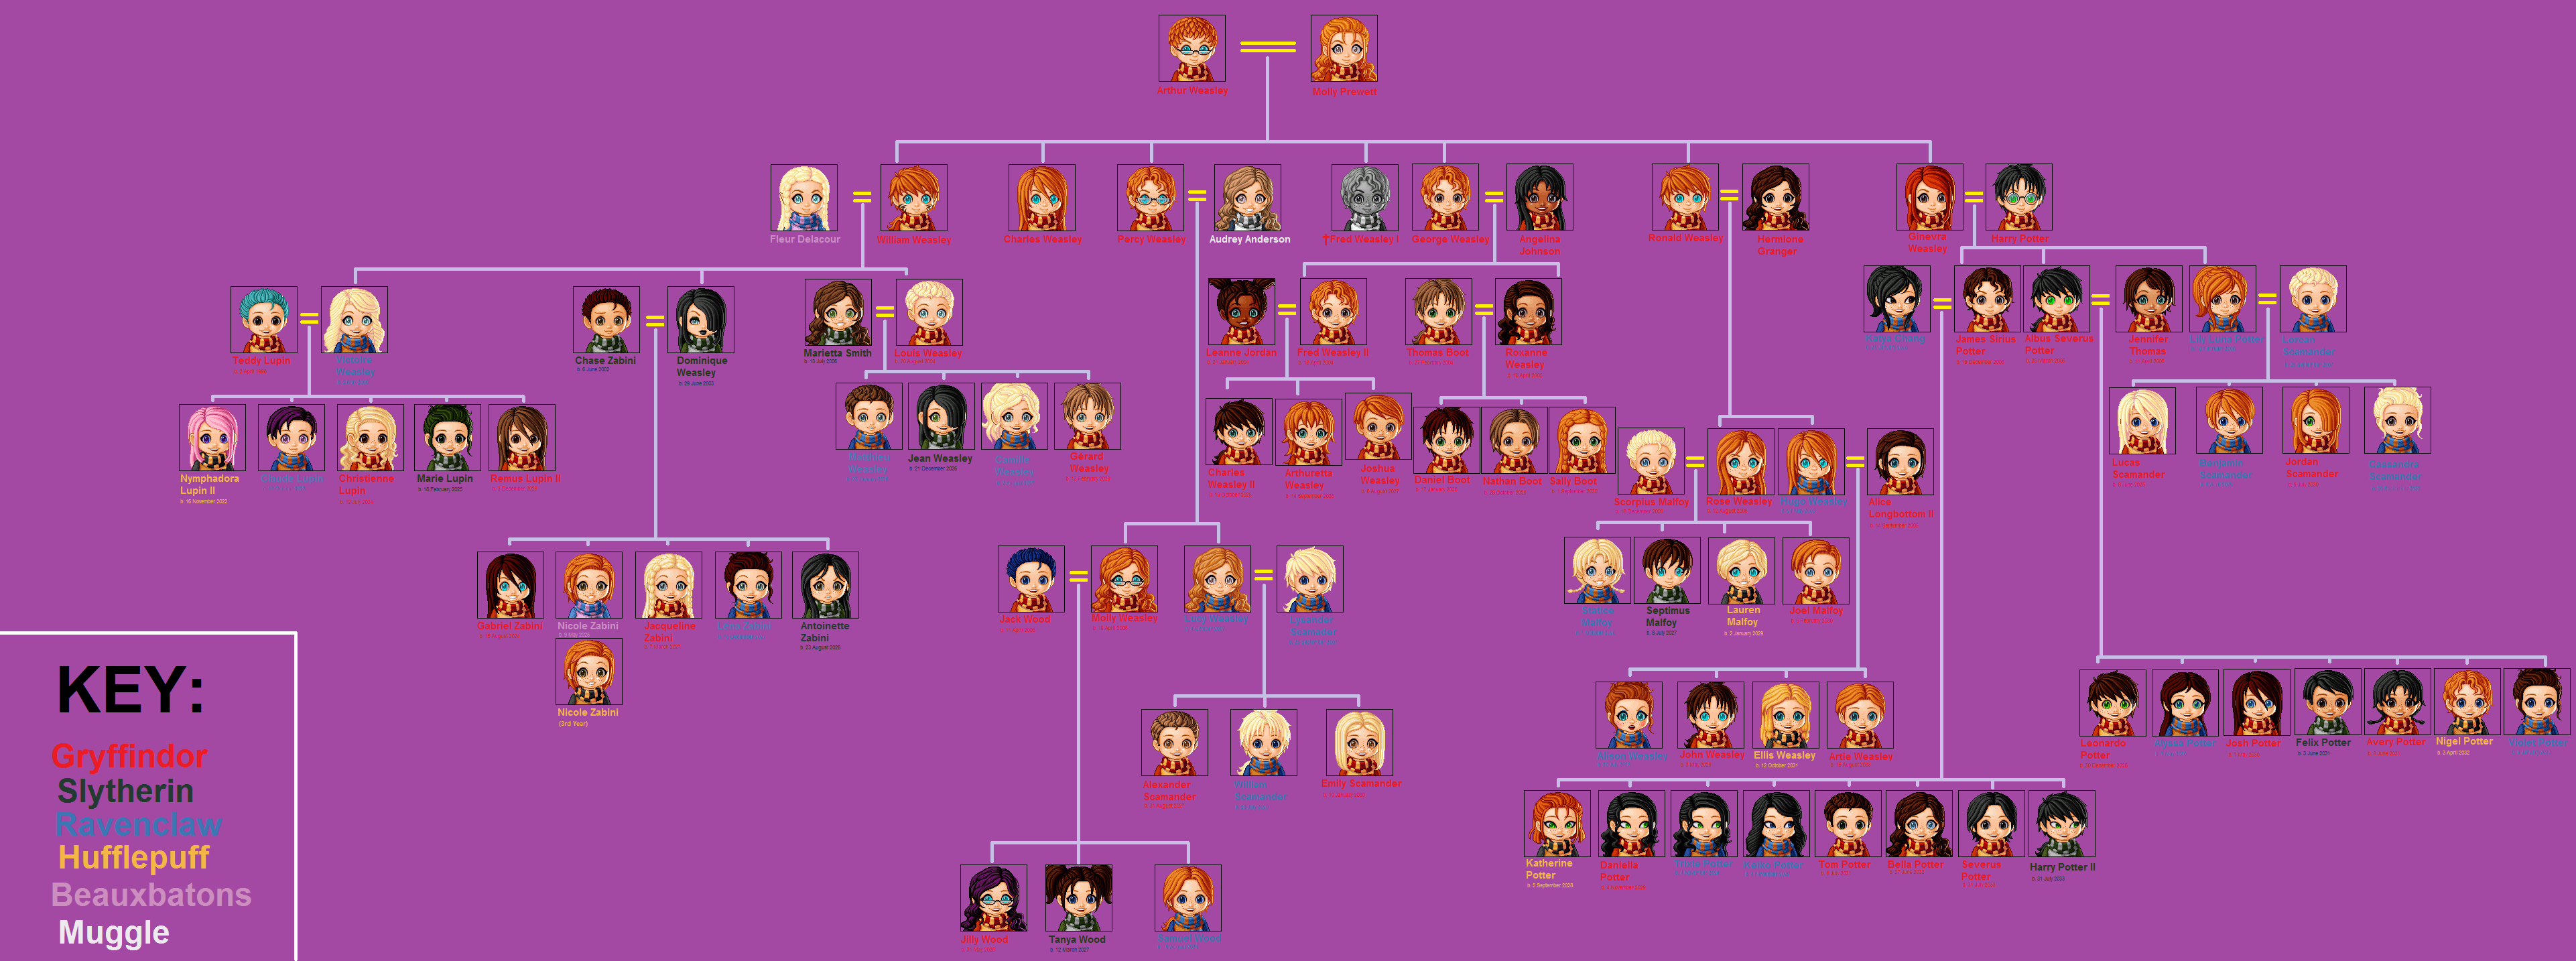 WEASLEY FAMILY TREE OF AWESOME :D by hkdk